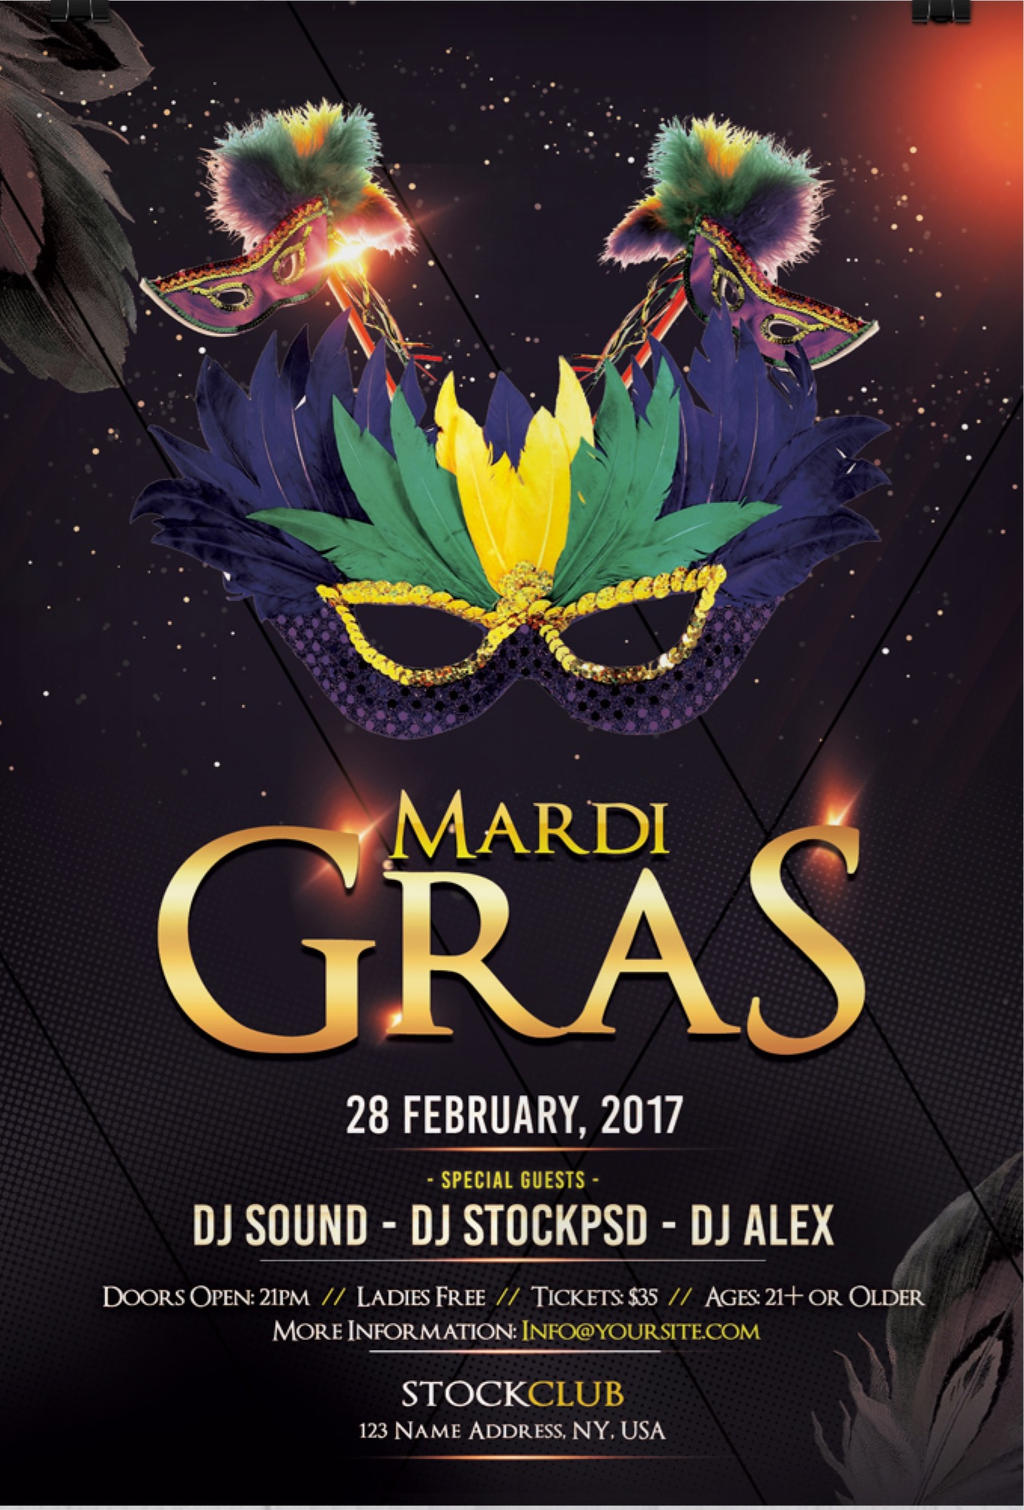 Mardi gras download free psd flyer template by stockpsd on deviantart mardi gras download free psd flyer template by stockpsd saigontimesfo